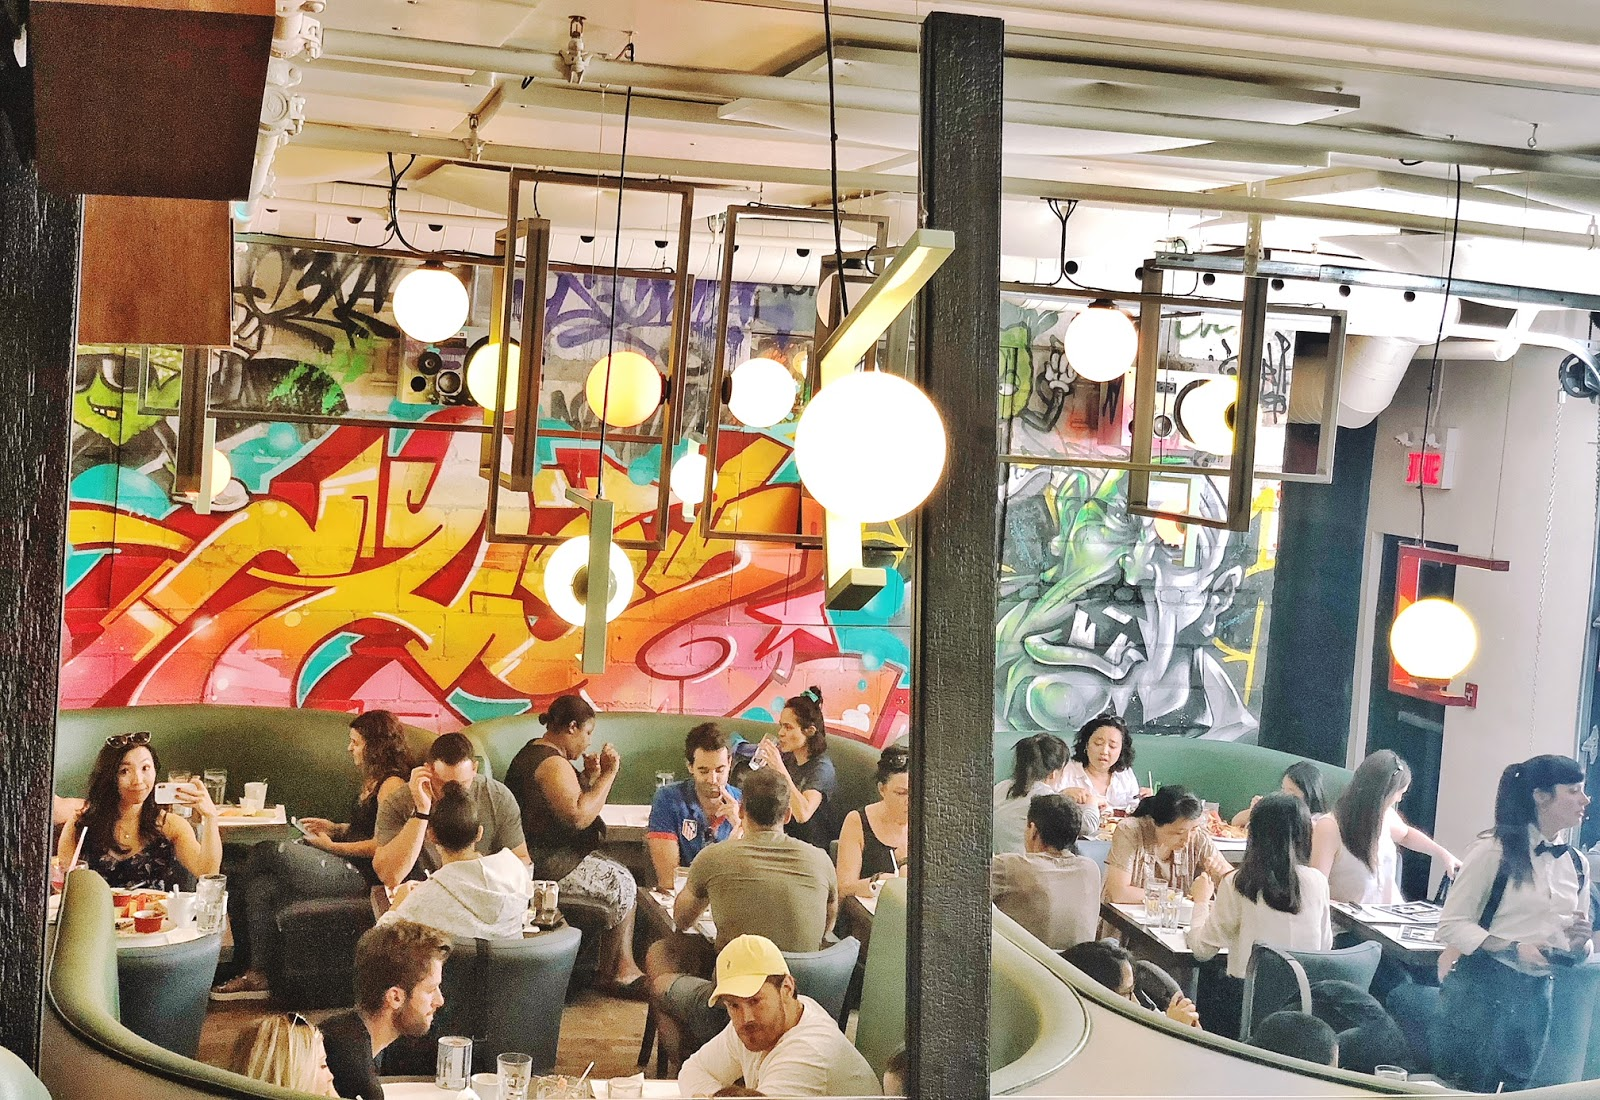 2 Days in Montreal - A Guide to What to Do and Where to Eat - L'avenue Brunch